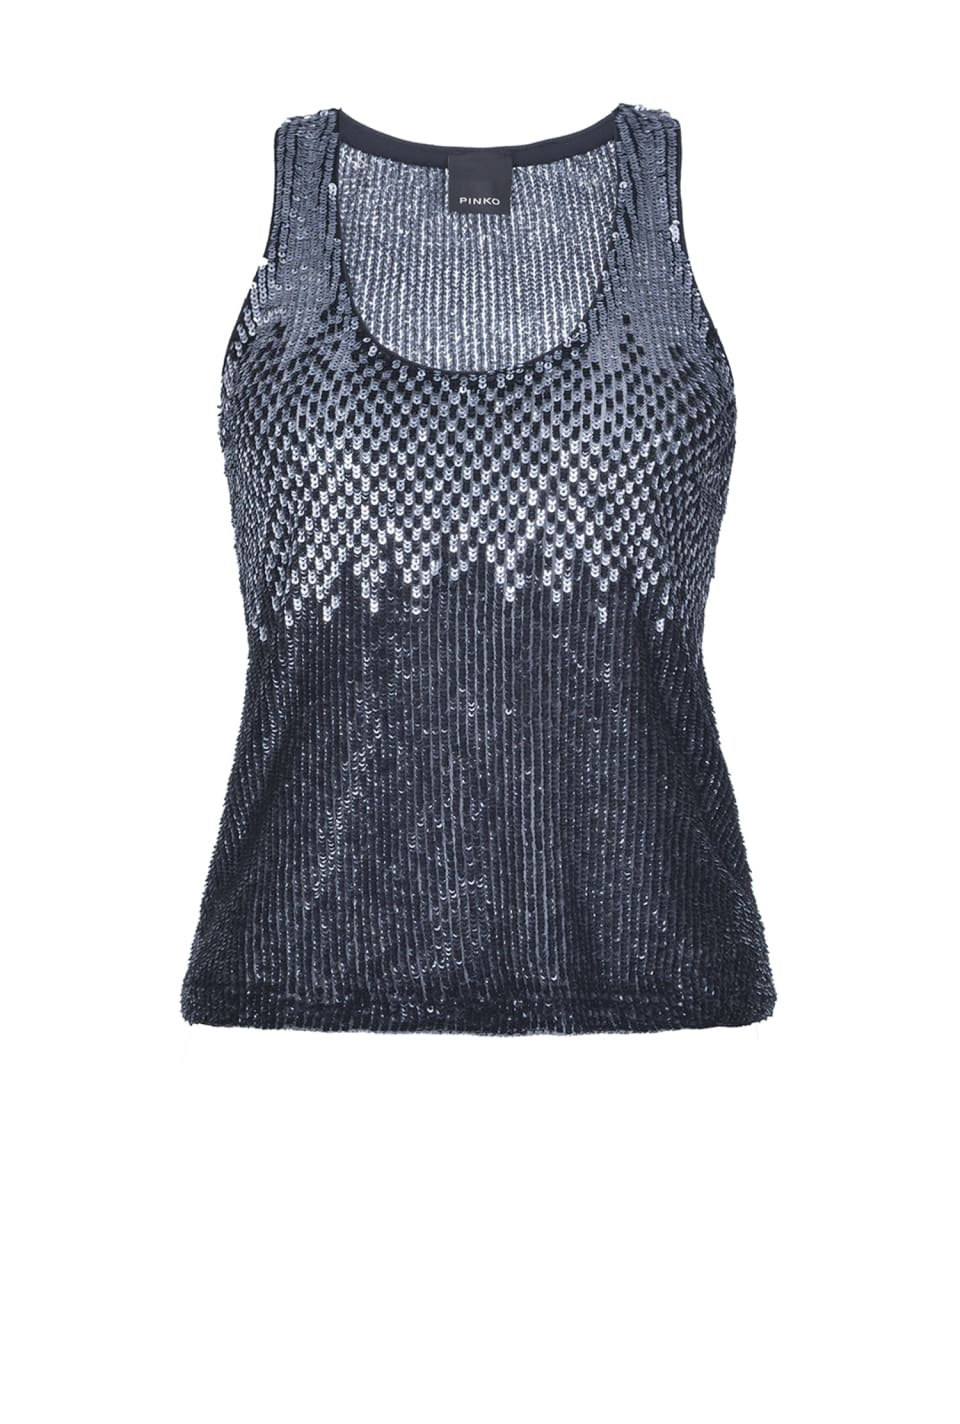 Tank top in full paillettes sfumato - Pinko